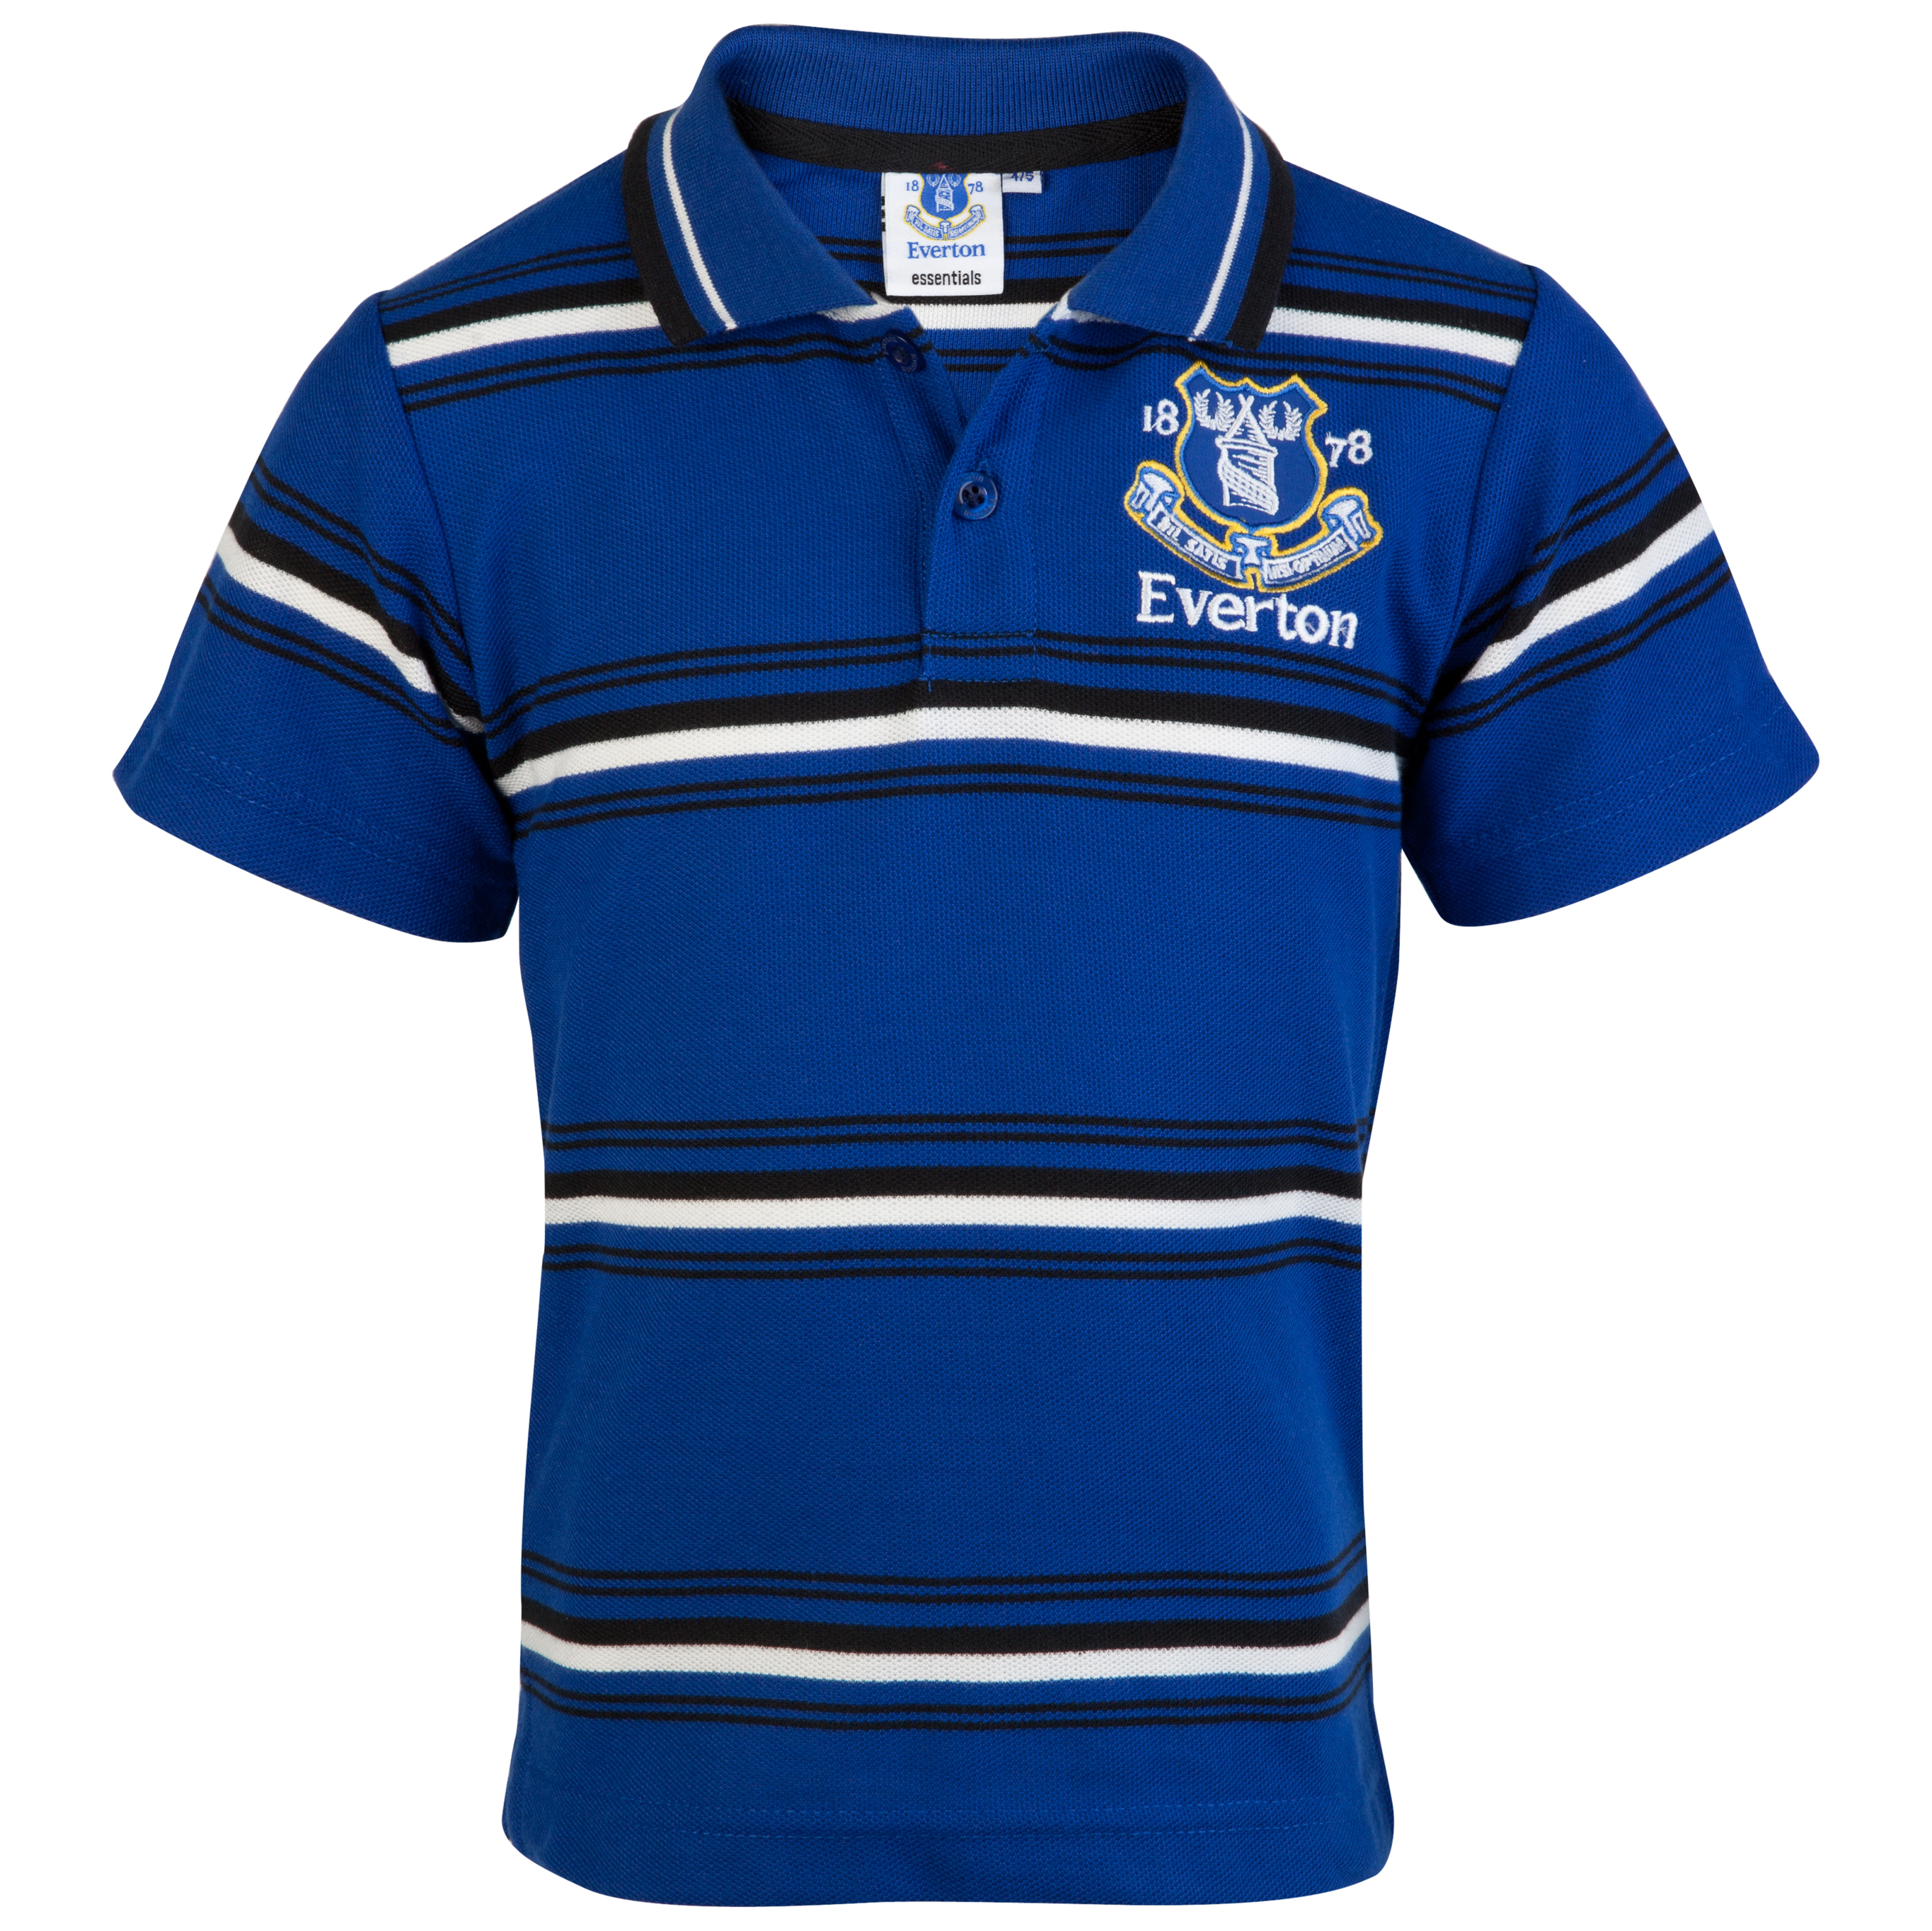 Everton Essential Possession Stripe Polo Top - Everton Blue - Infant Boys